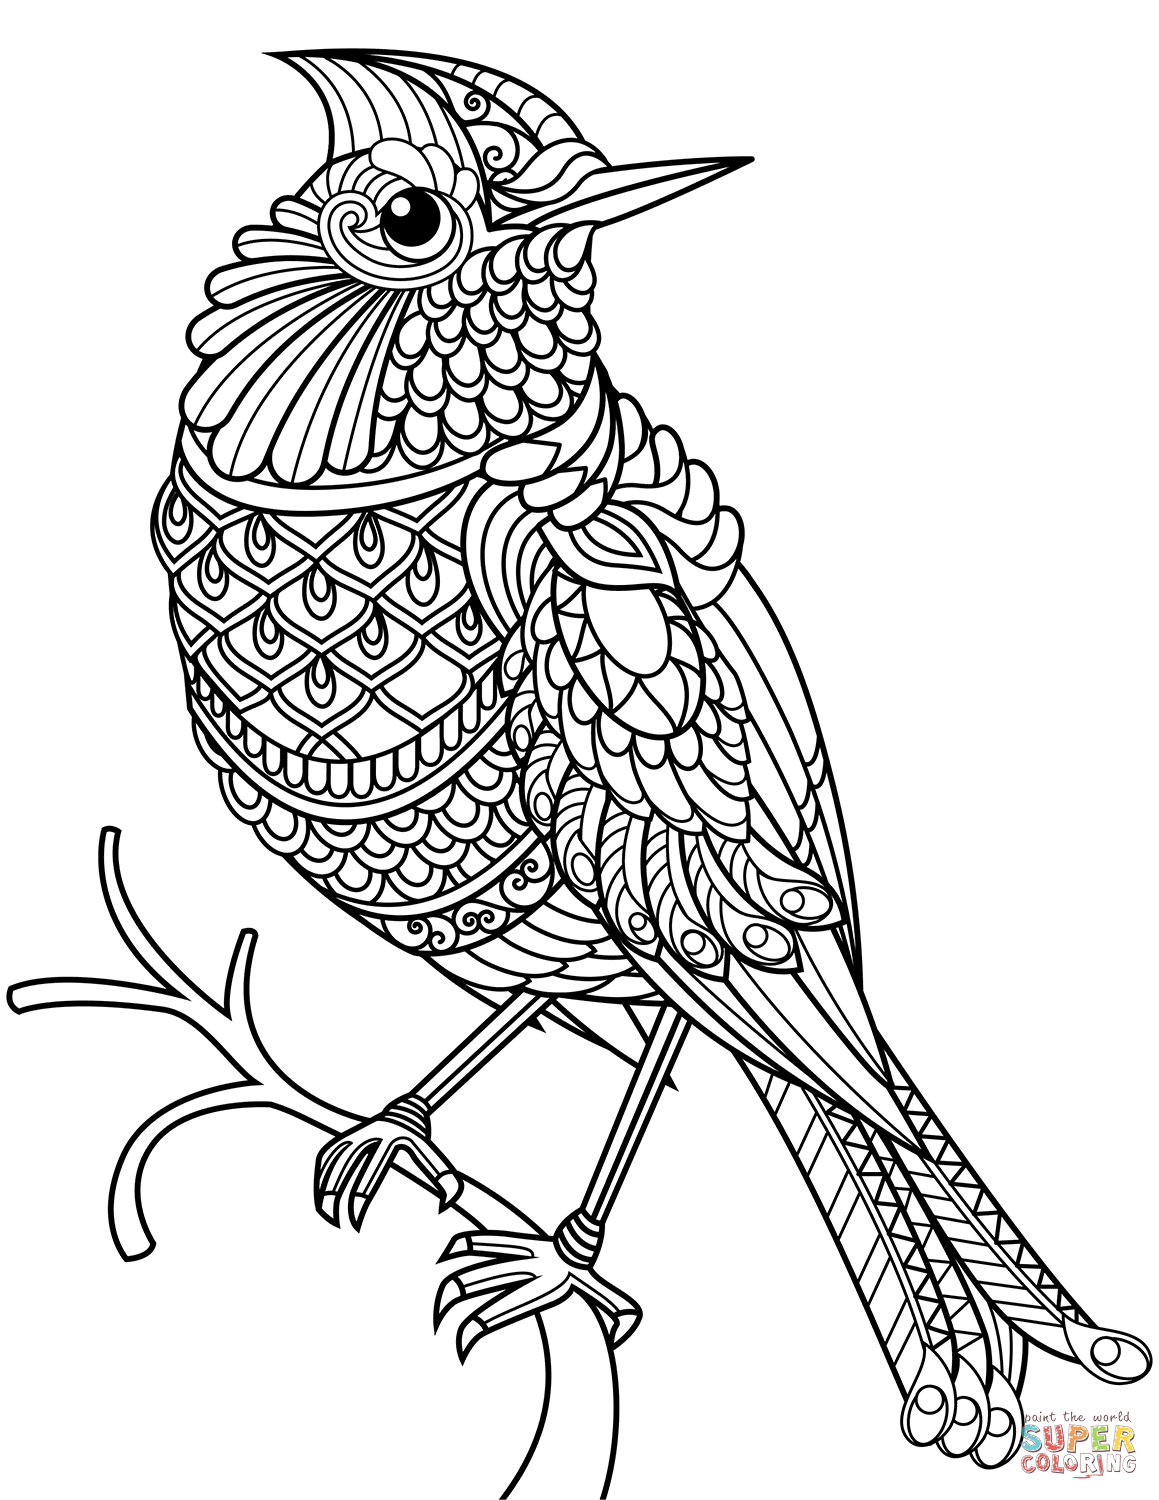 zentangle coloring pages free printable zentangle to print for free zentangle kids coloring pages printable coloring pages zentangle free